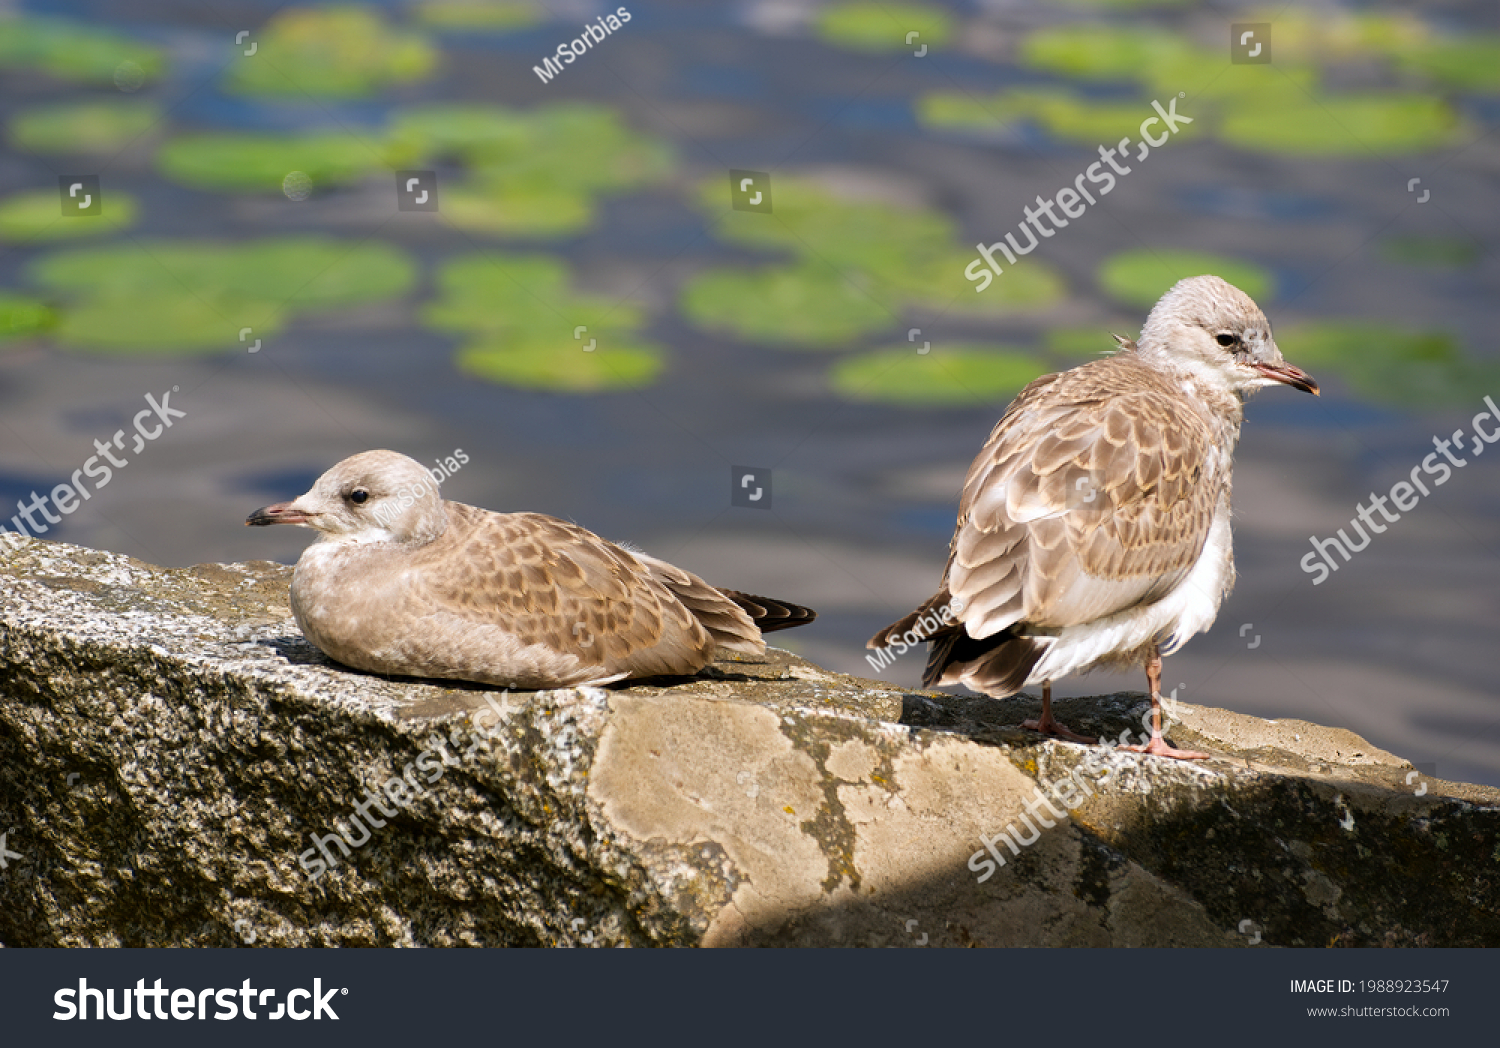 stock-photo-baby-seagulls-sitting-on-a-s